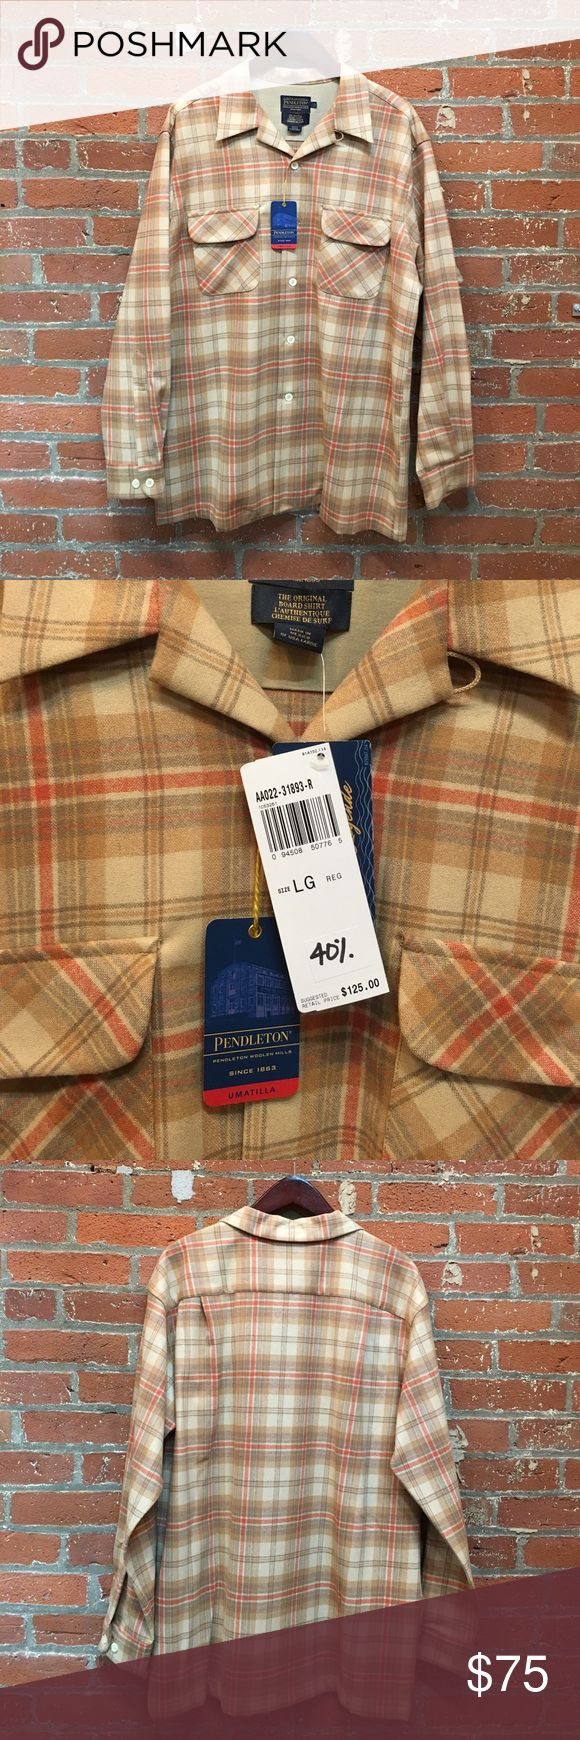 NWT The Original Pendleton Board Shirt NWT original Pendleton Board Shirt, 100% virgin Wool plain weave. machine washable. Pendleton Shirts Casual Button Down Shirts